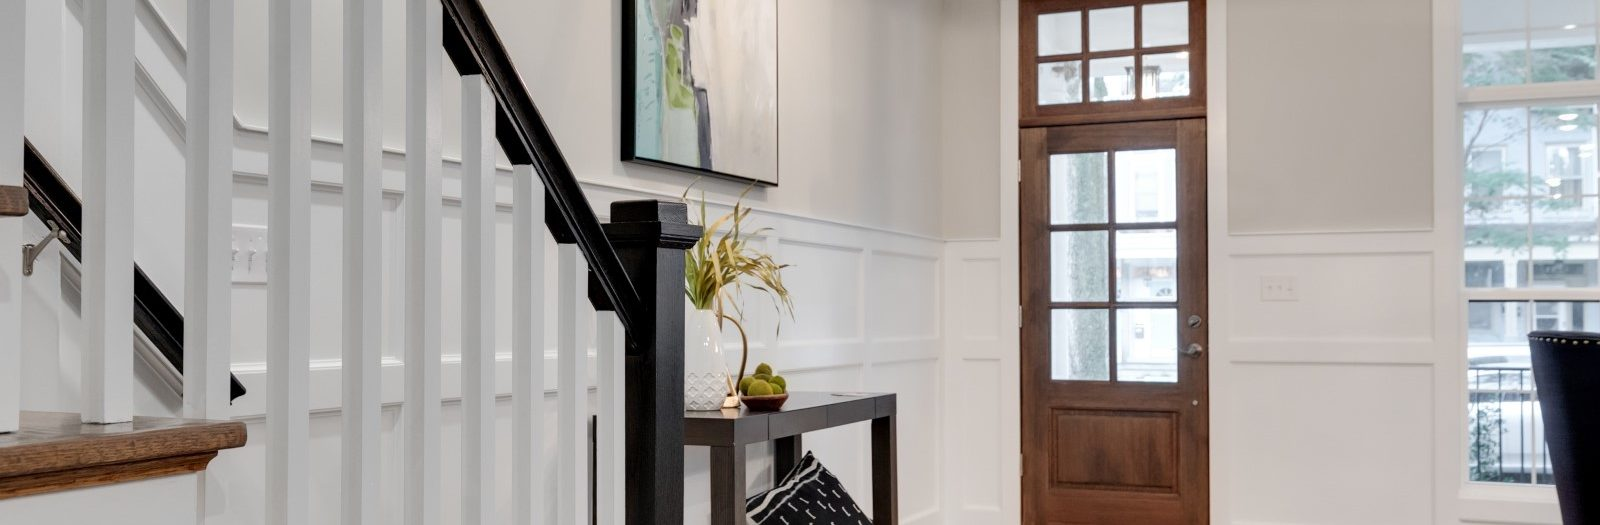 Entryway of new townhouse by Richmond Hill Design-Build